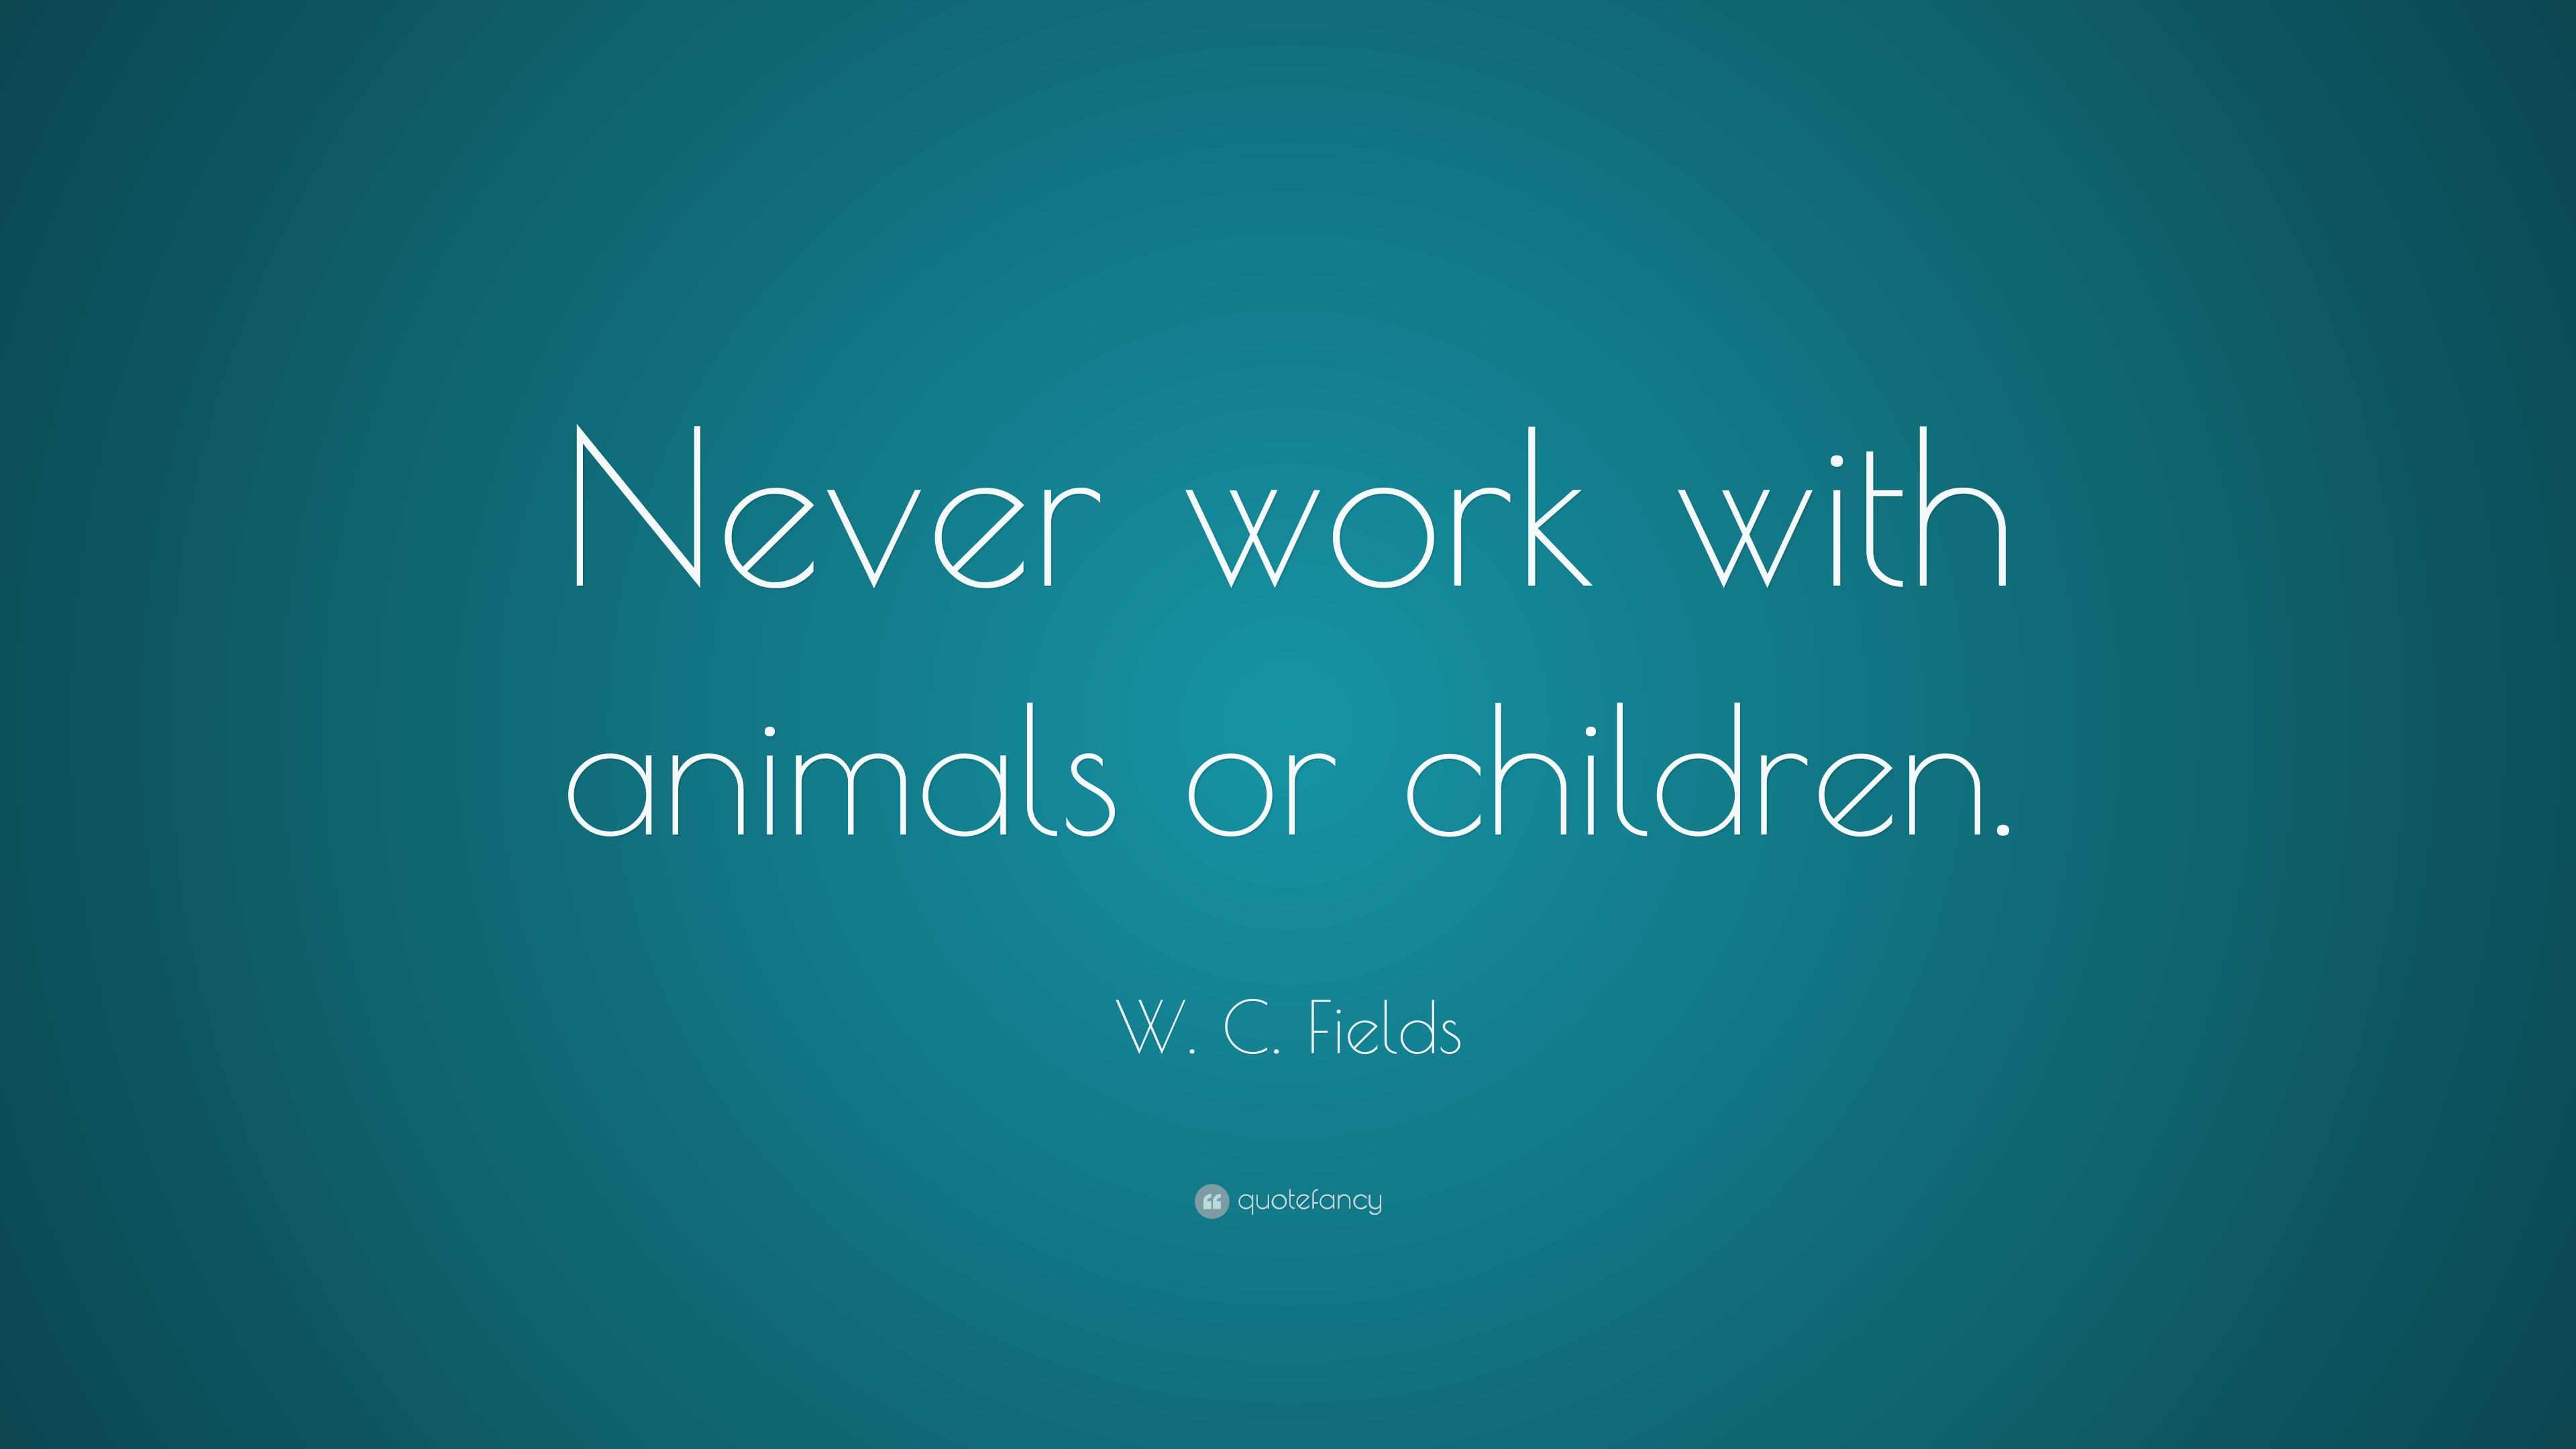 Truth Wallpapers With Quotes W C Fields Quote Never Work With Animals Or Children